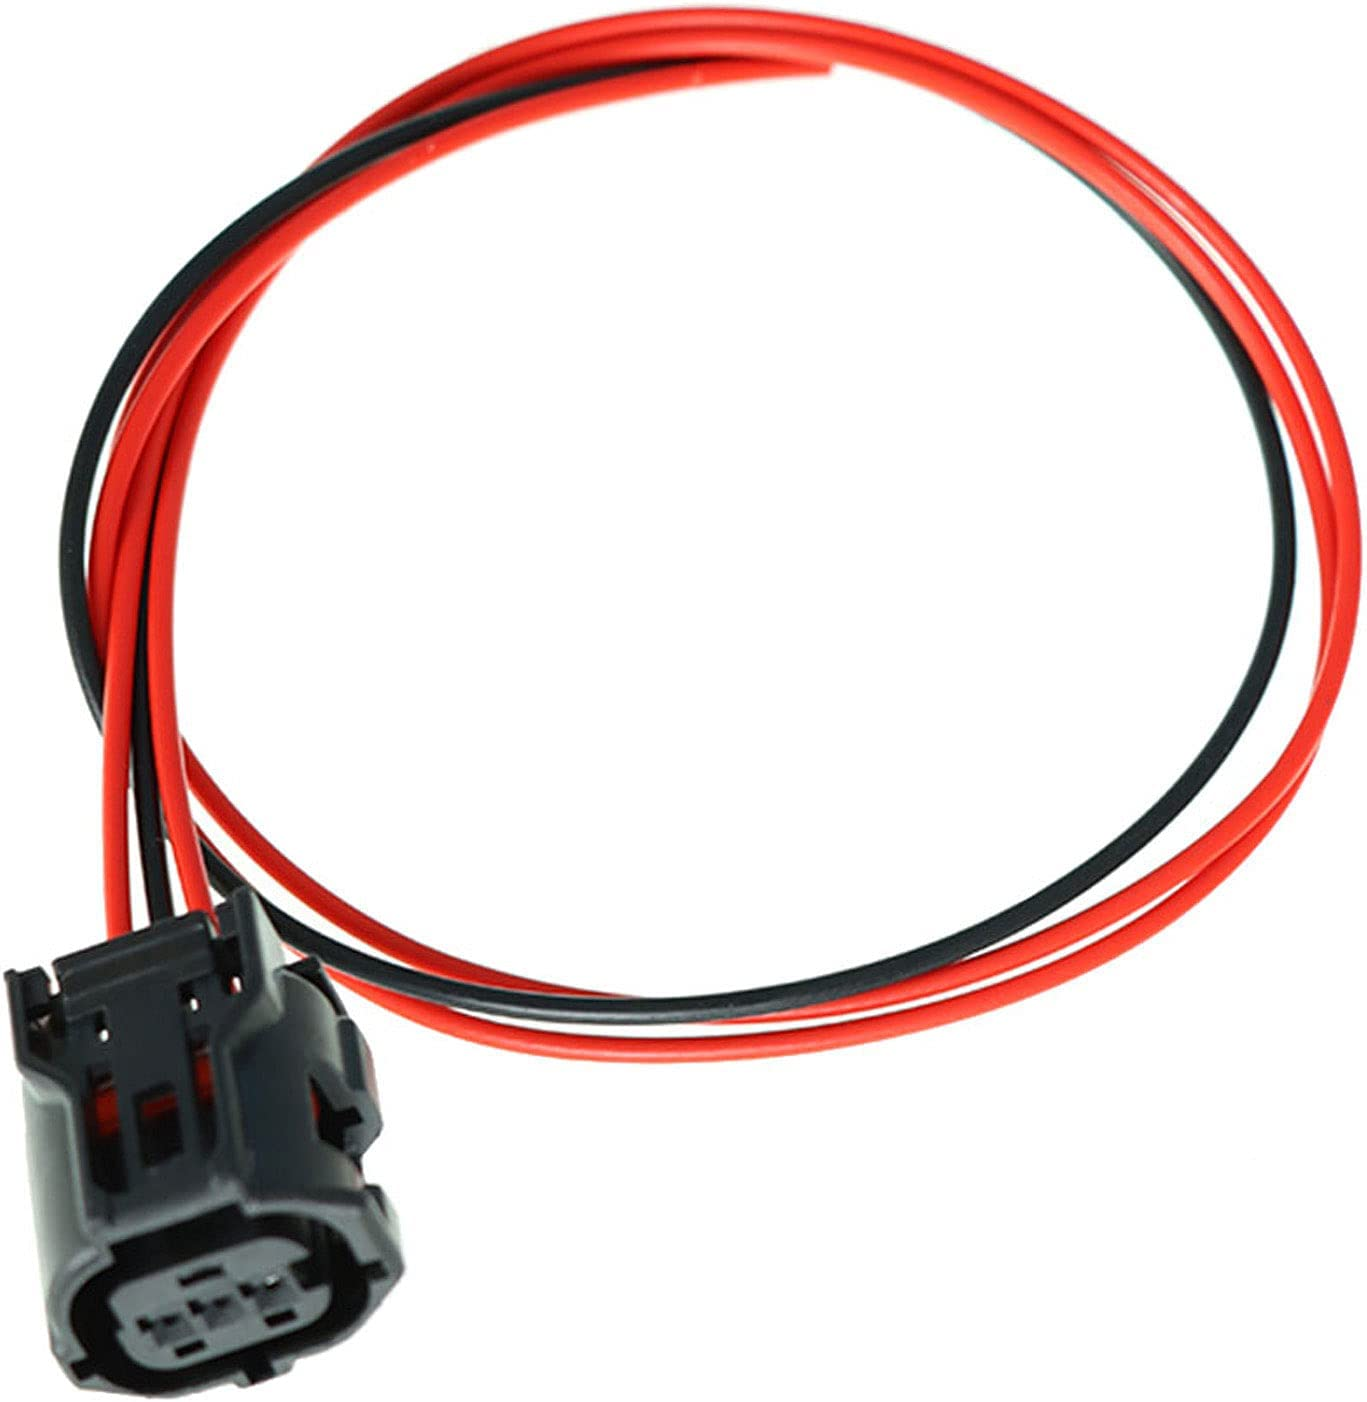 WFLNHB Camshaft Position Sensor Connector Cheap SALE Start Toyota fit Harness Ranking TOP2 for